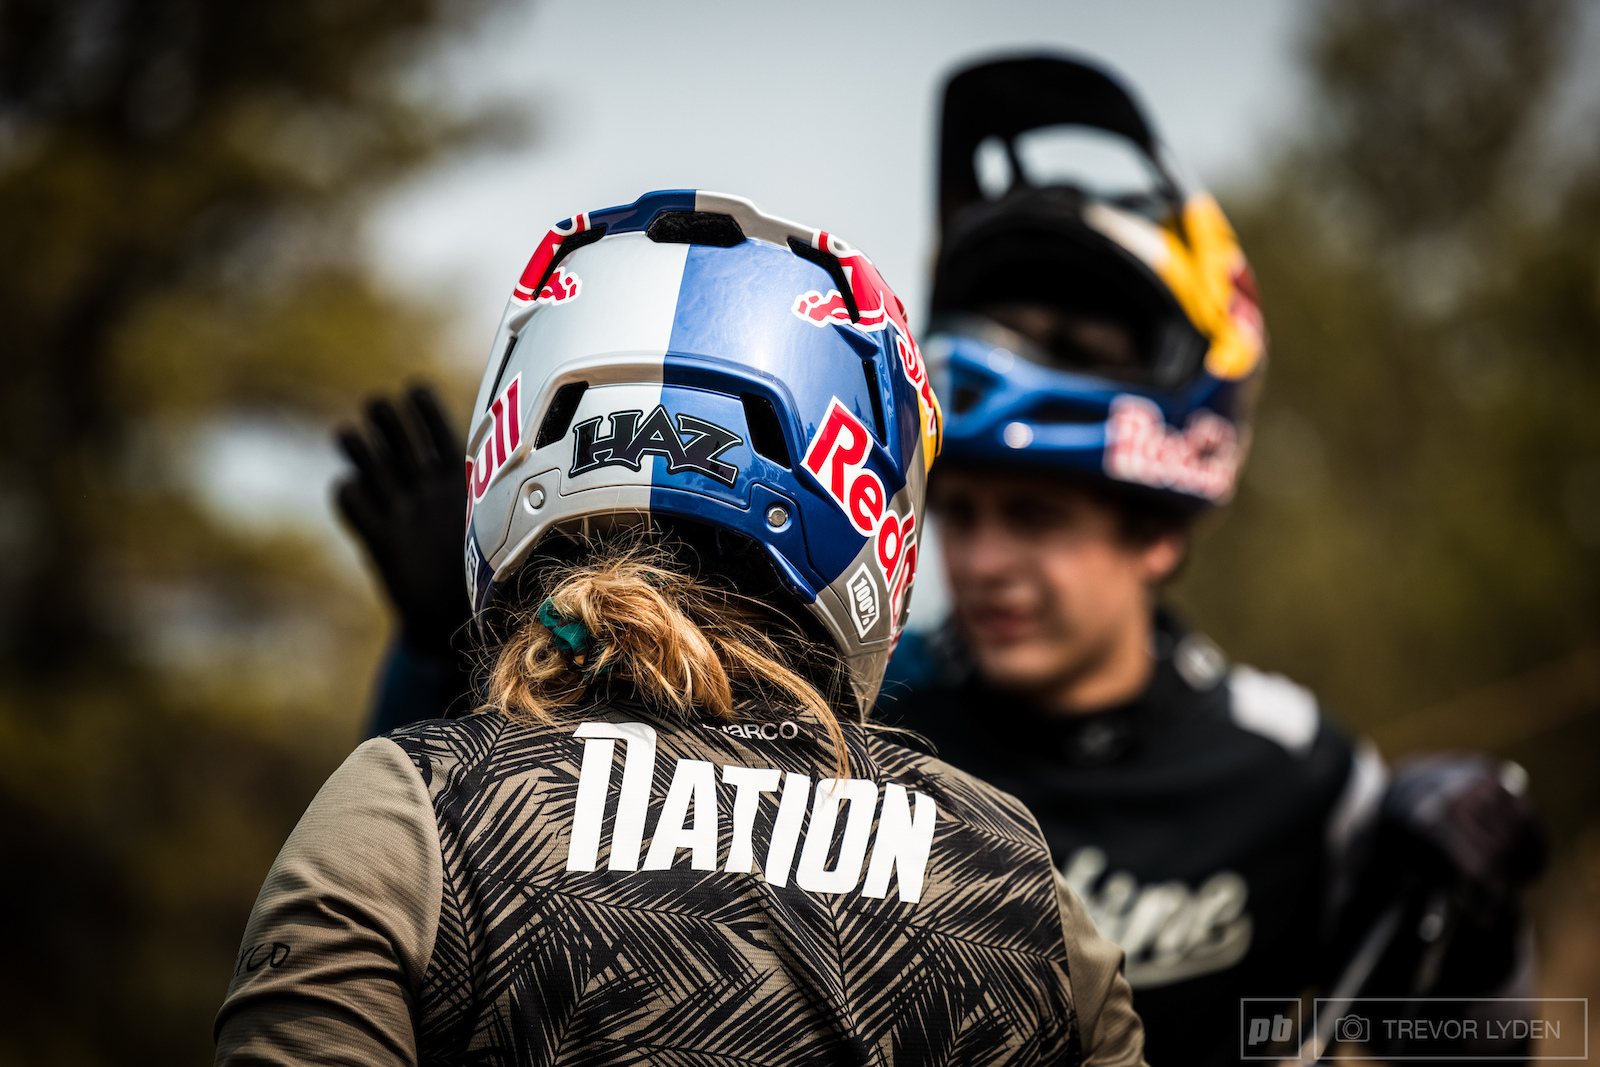 Red Bull athletes Harriet Burbridge-Smith and Carson Storch sharing line beta.